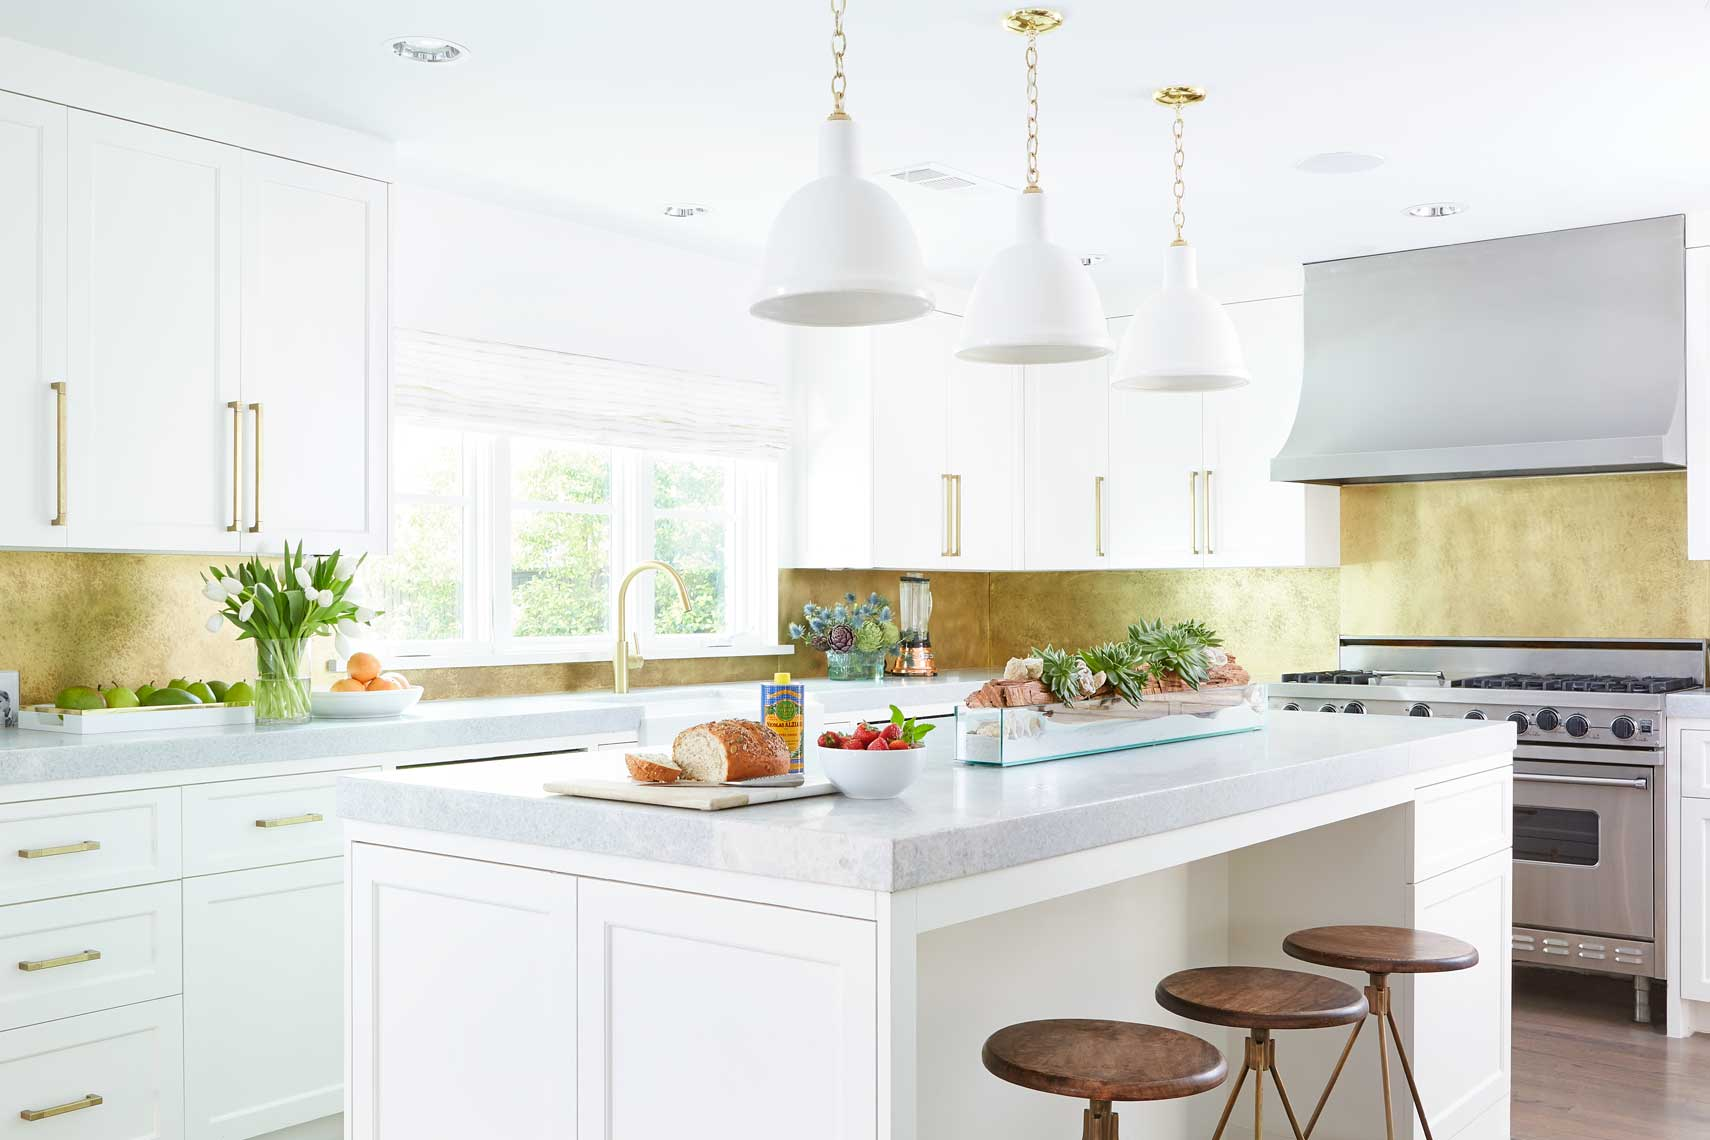 042616_4425Arcady_Interiors_010_kitchen